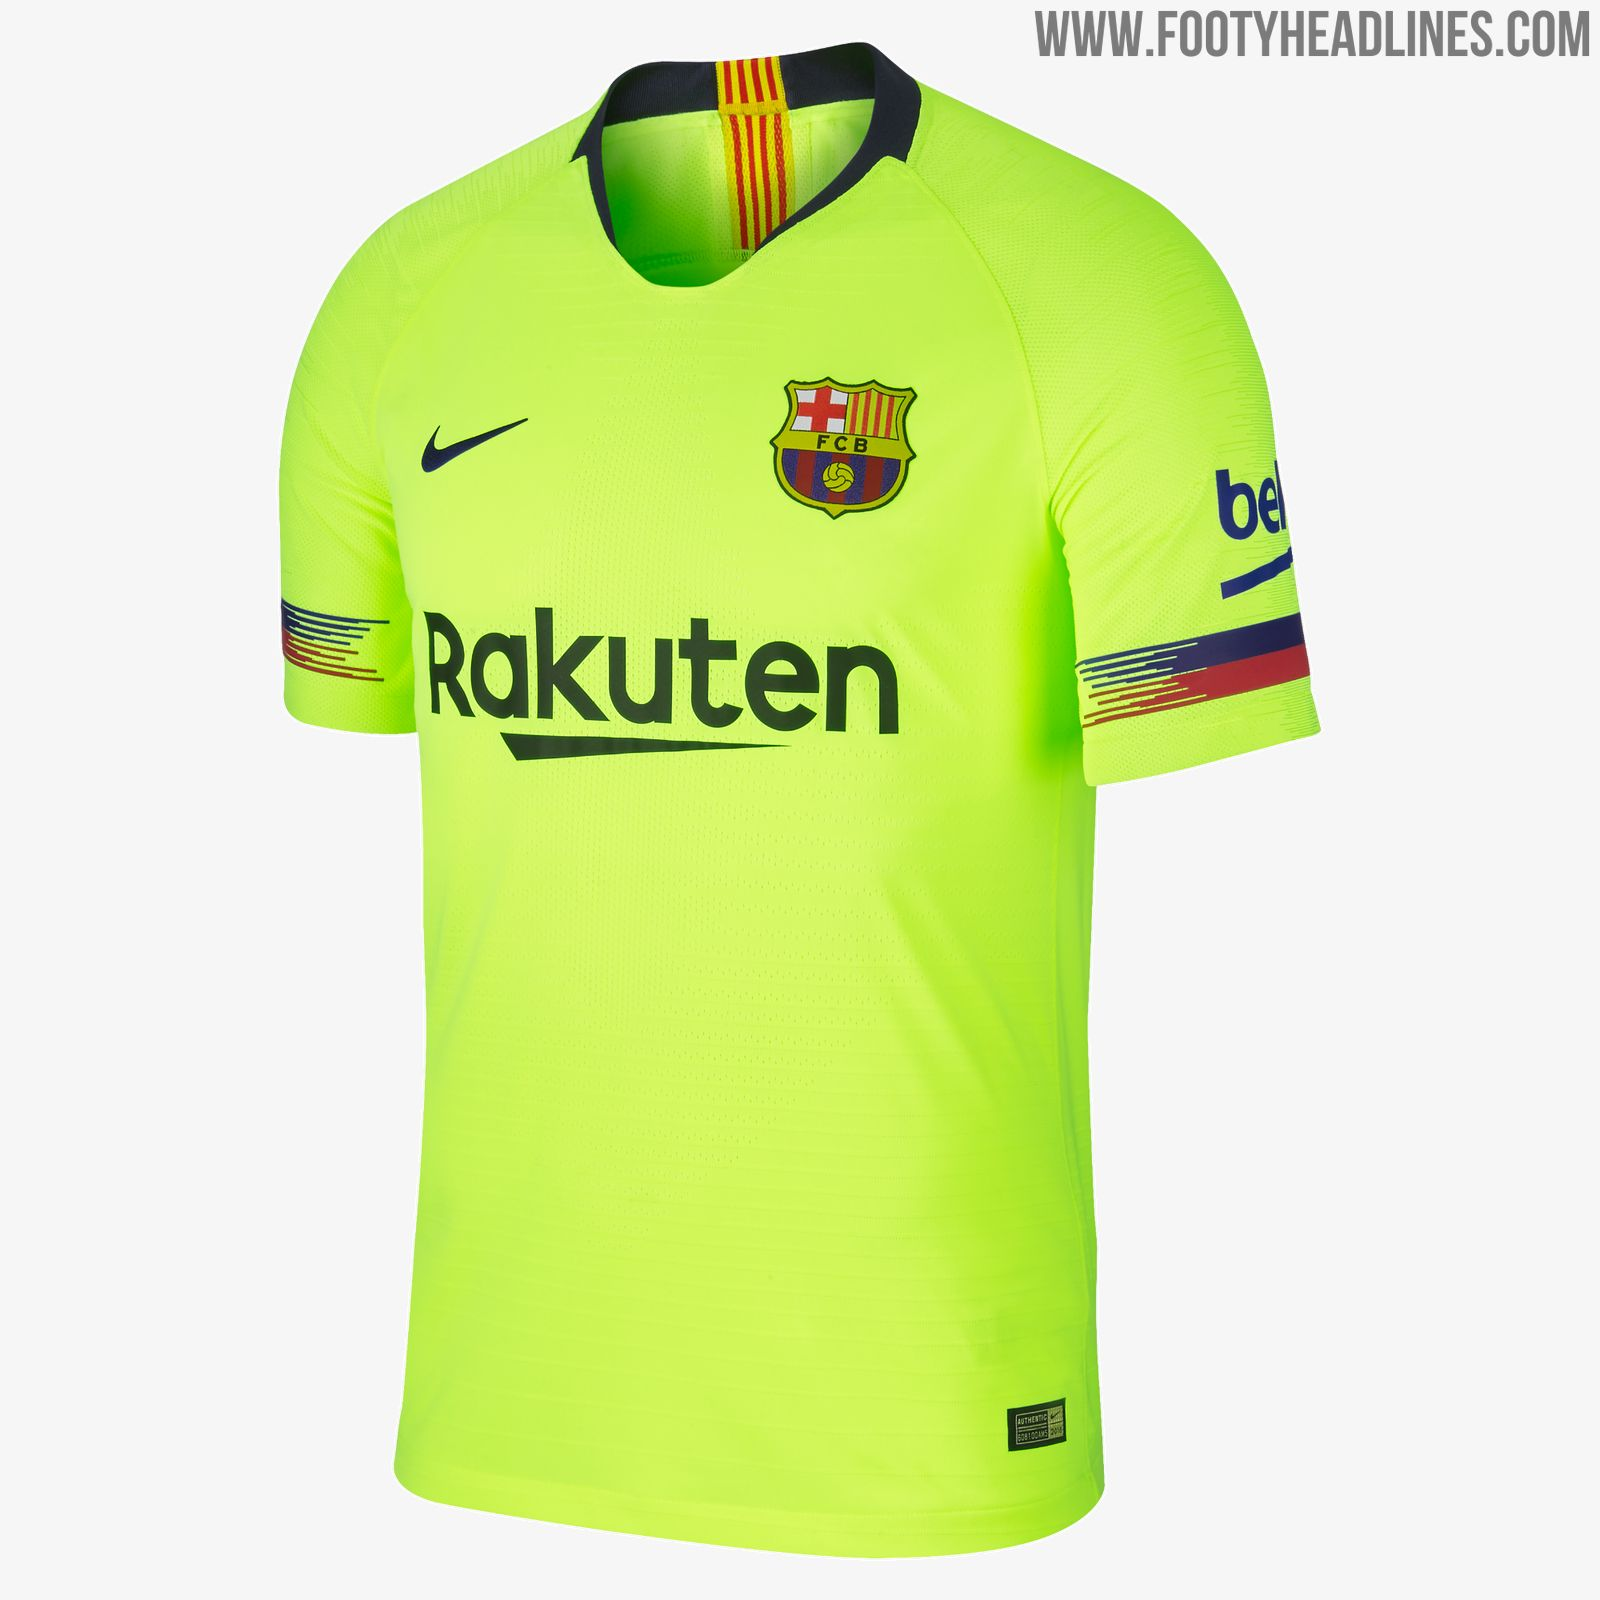 Barcelona 18-19 Away Kit Buy now. Free worldwide delivery on all orders 44223626e